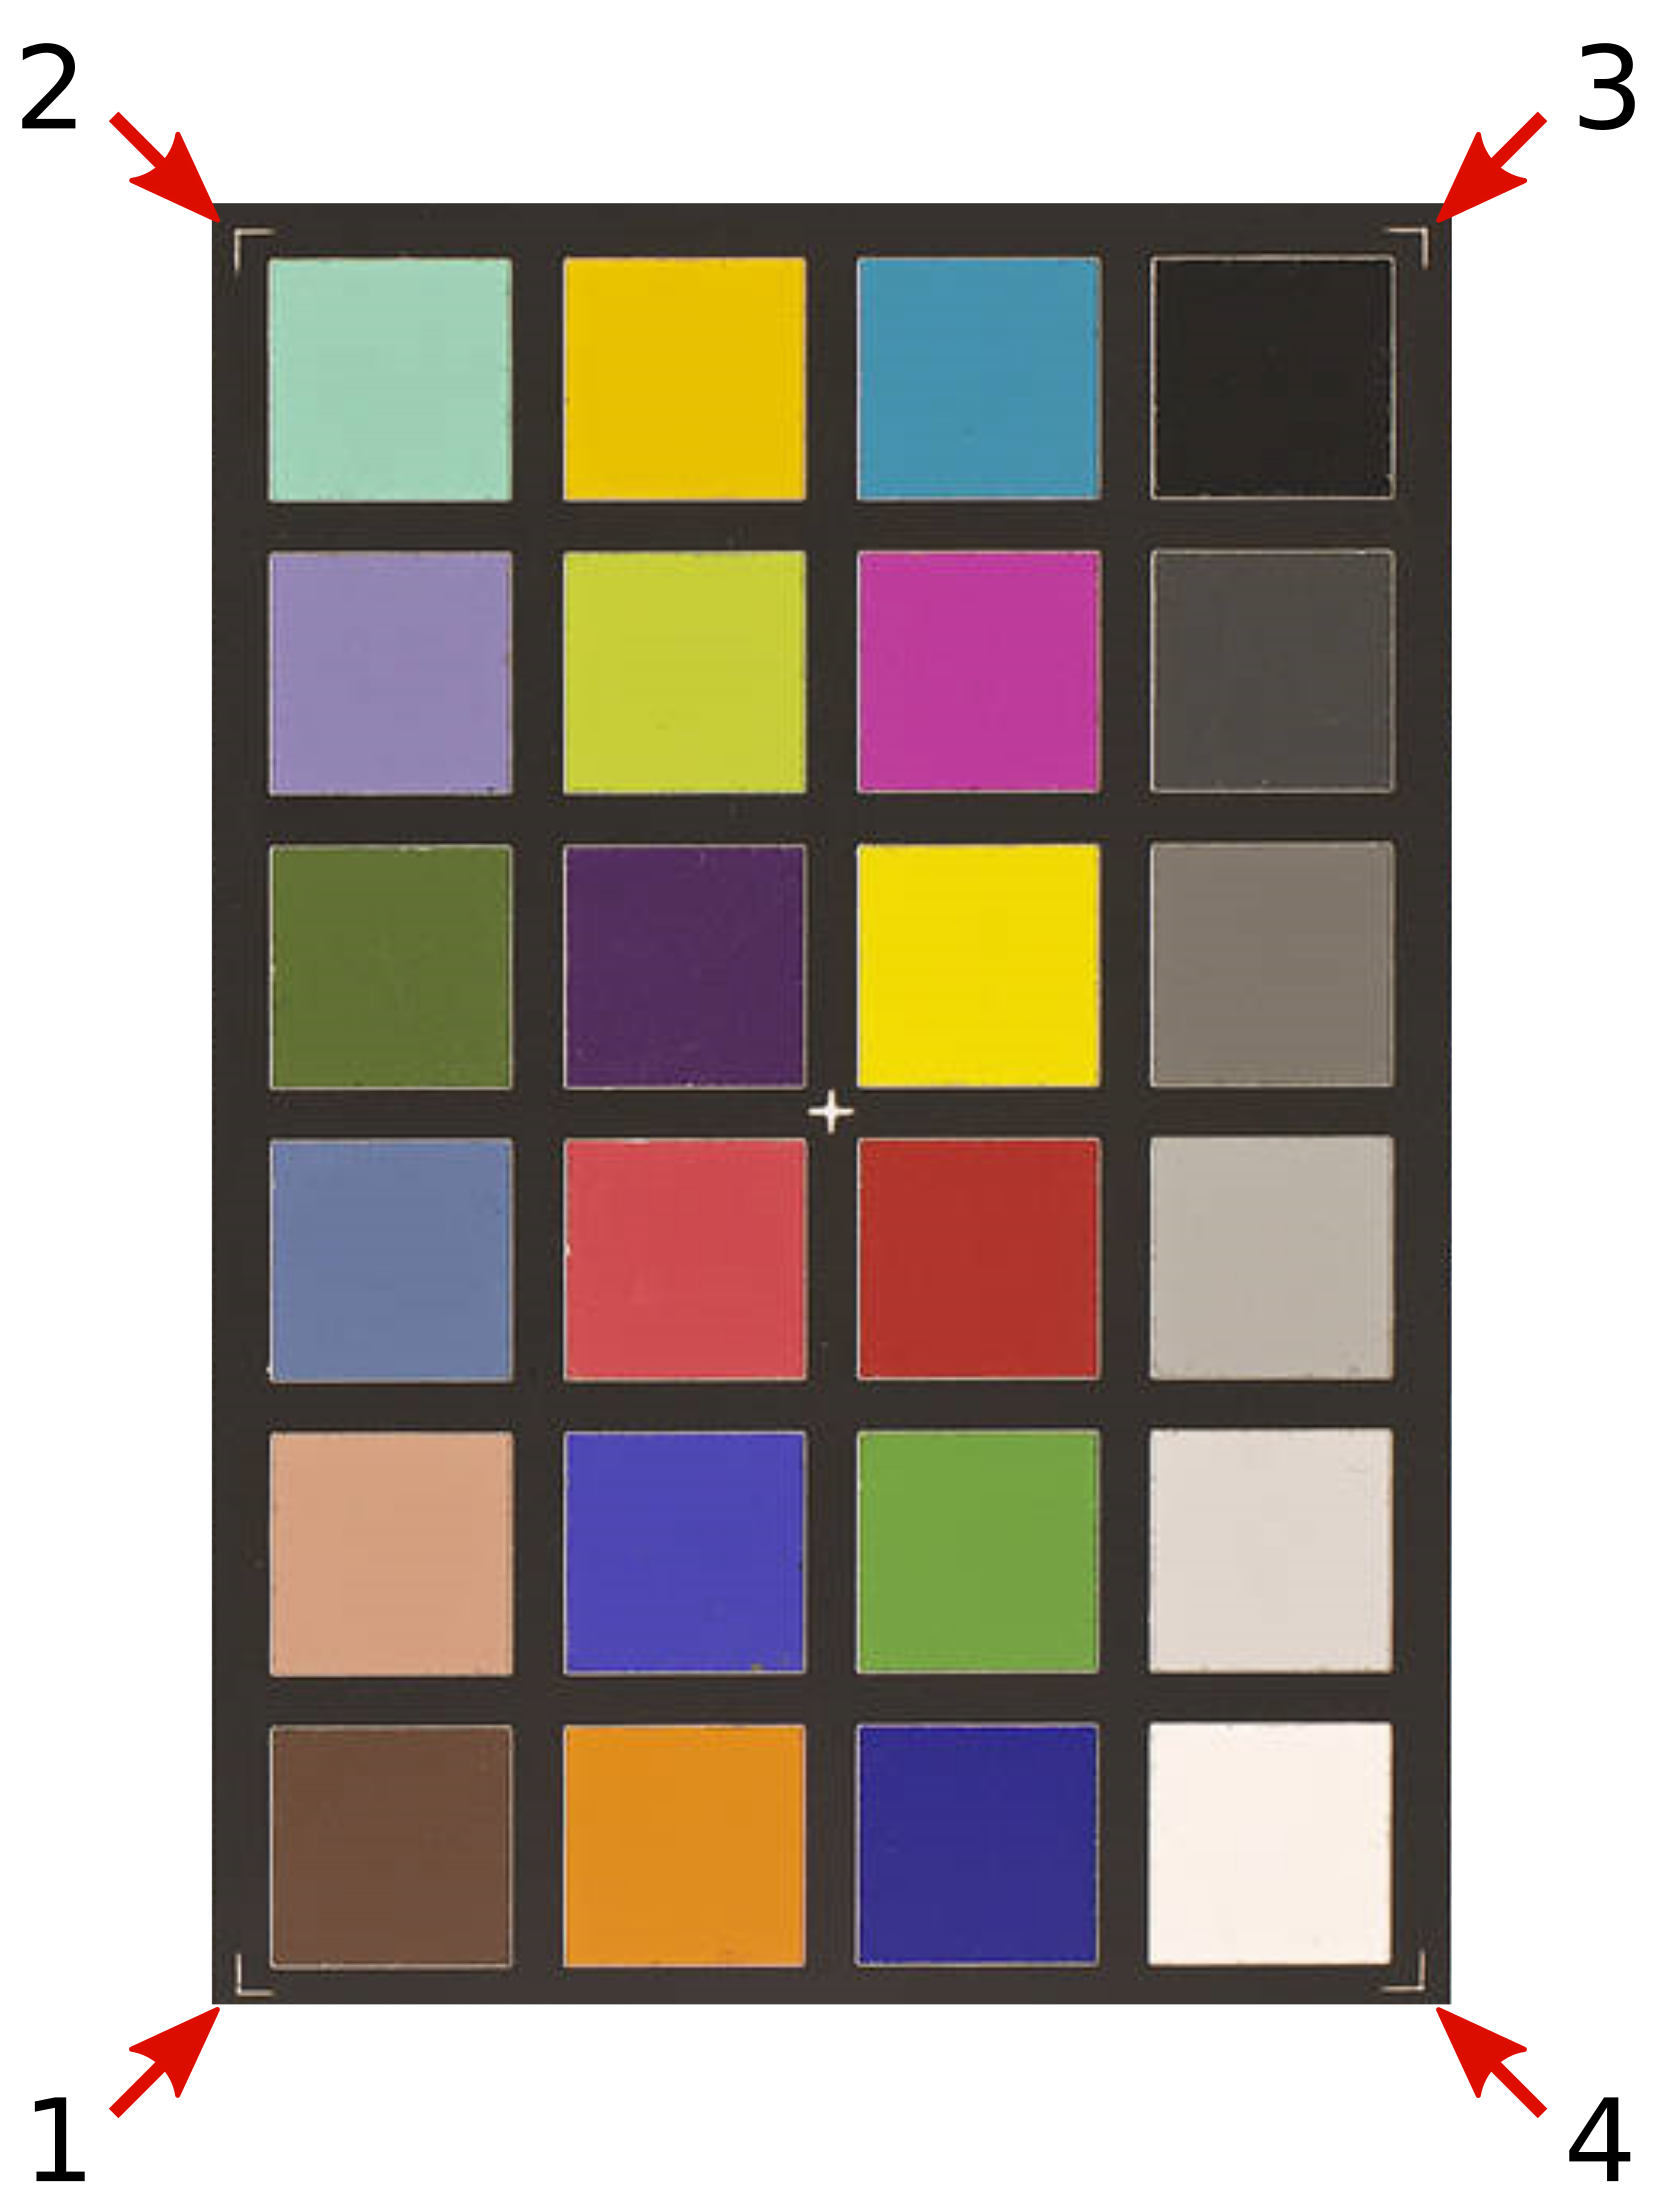 ColorChecker corners